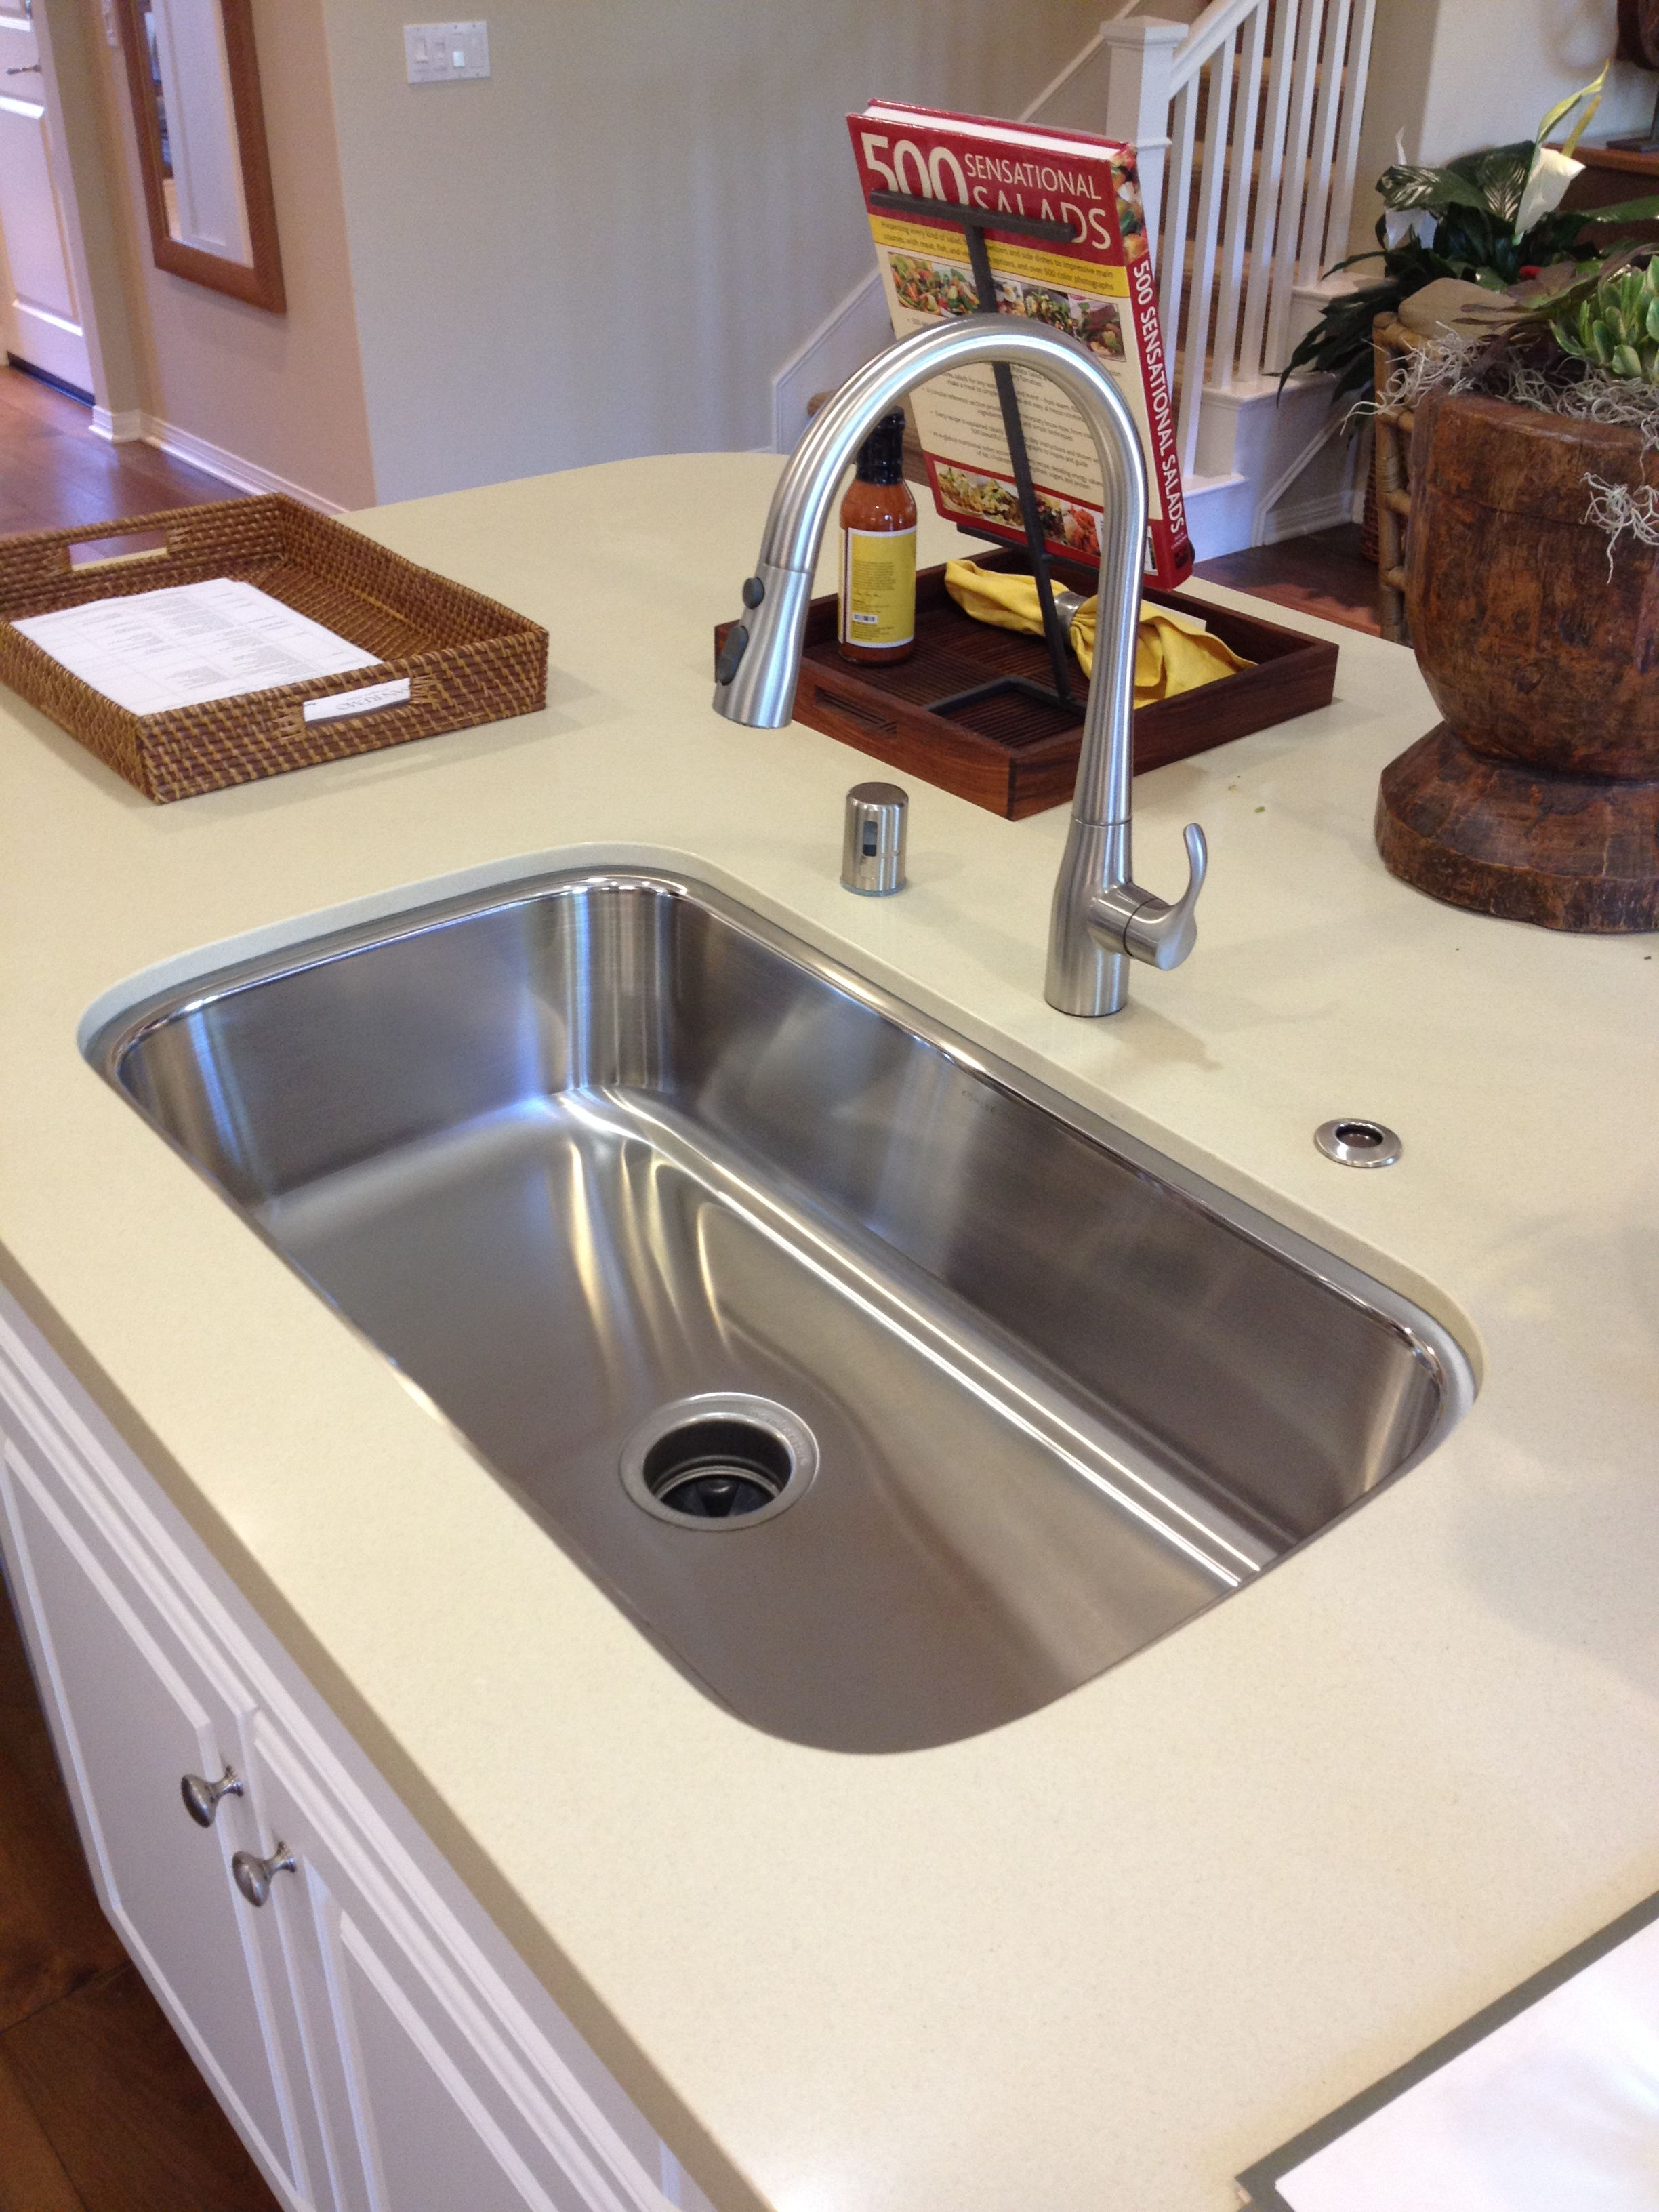 Giant stainless steel single-tub sink. You want undermount - no ...